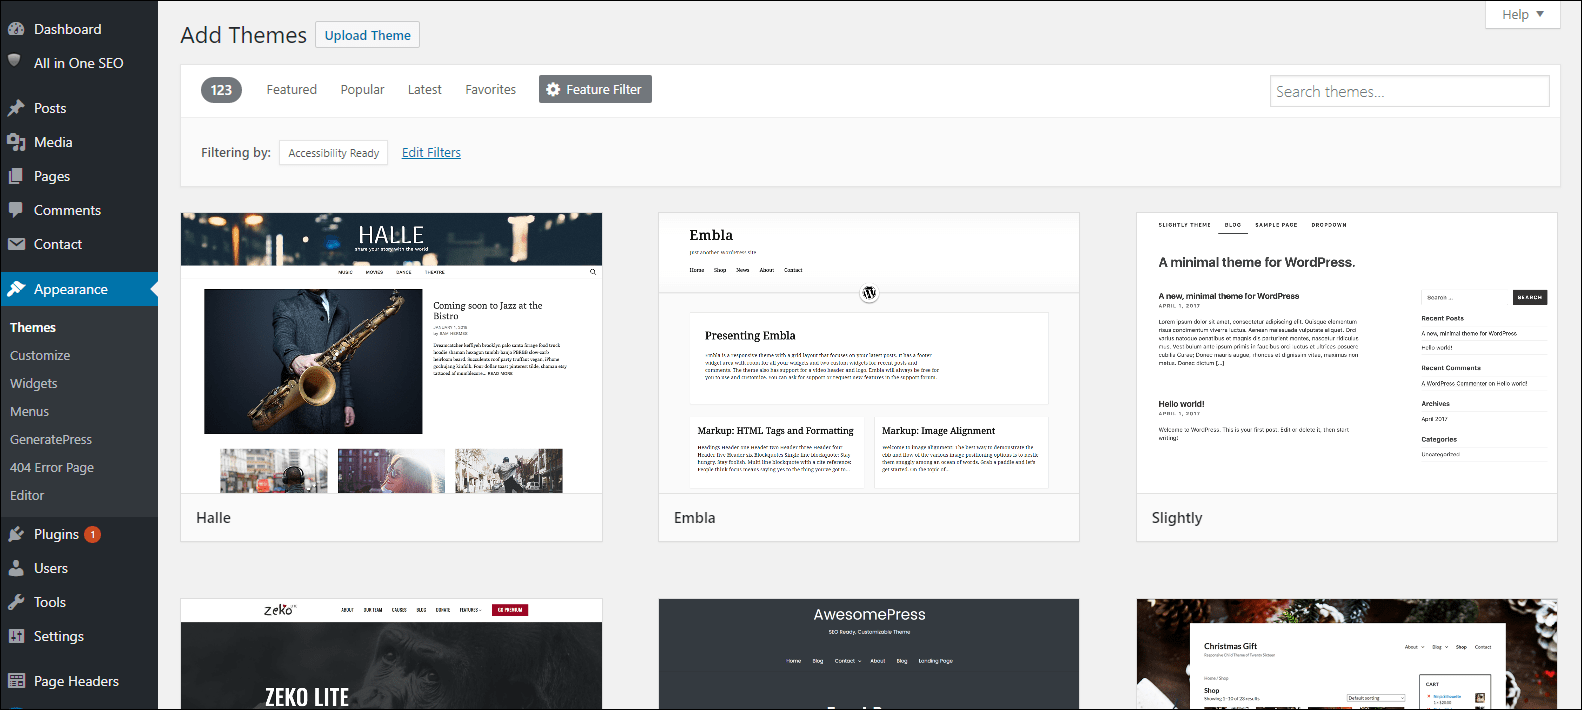 WordPress dashboard with grid display of available themes